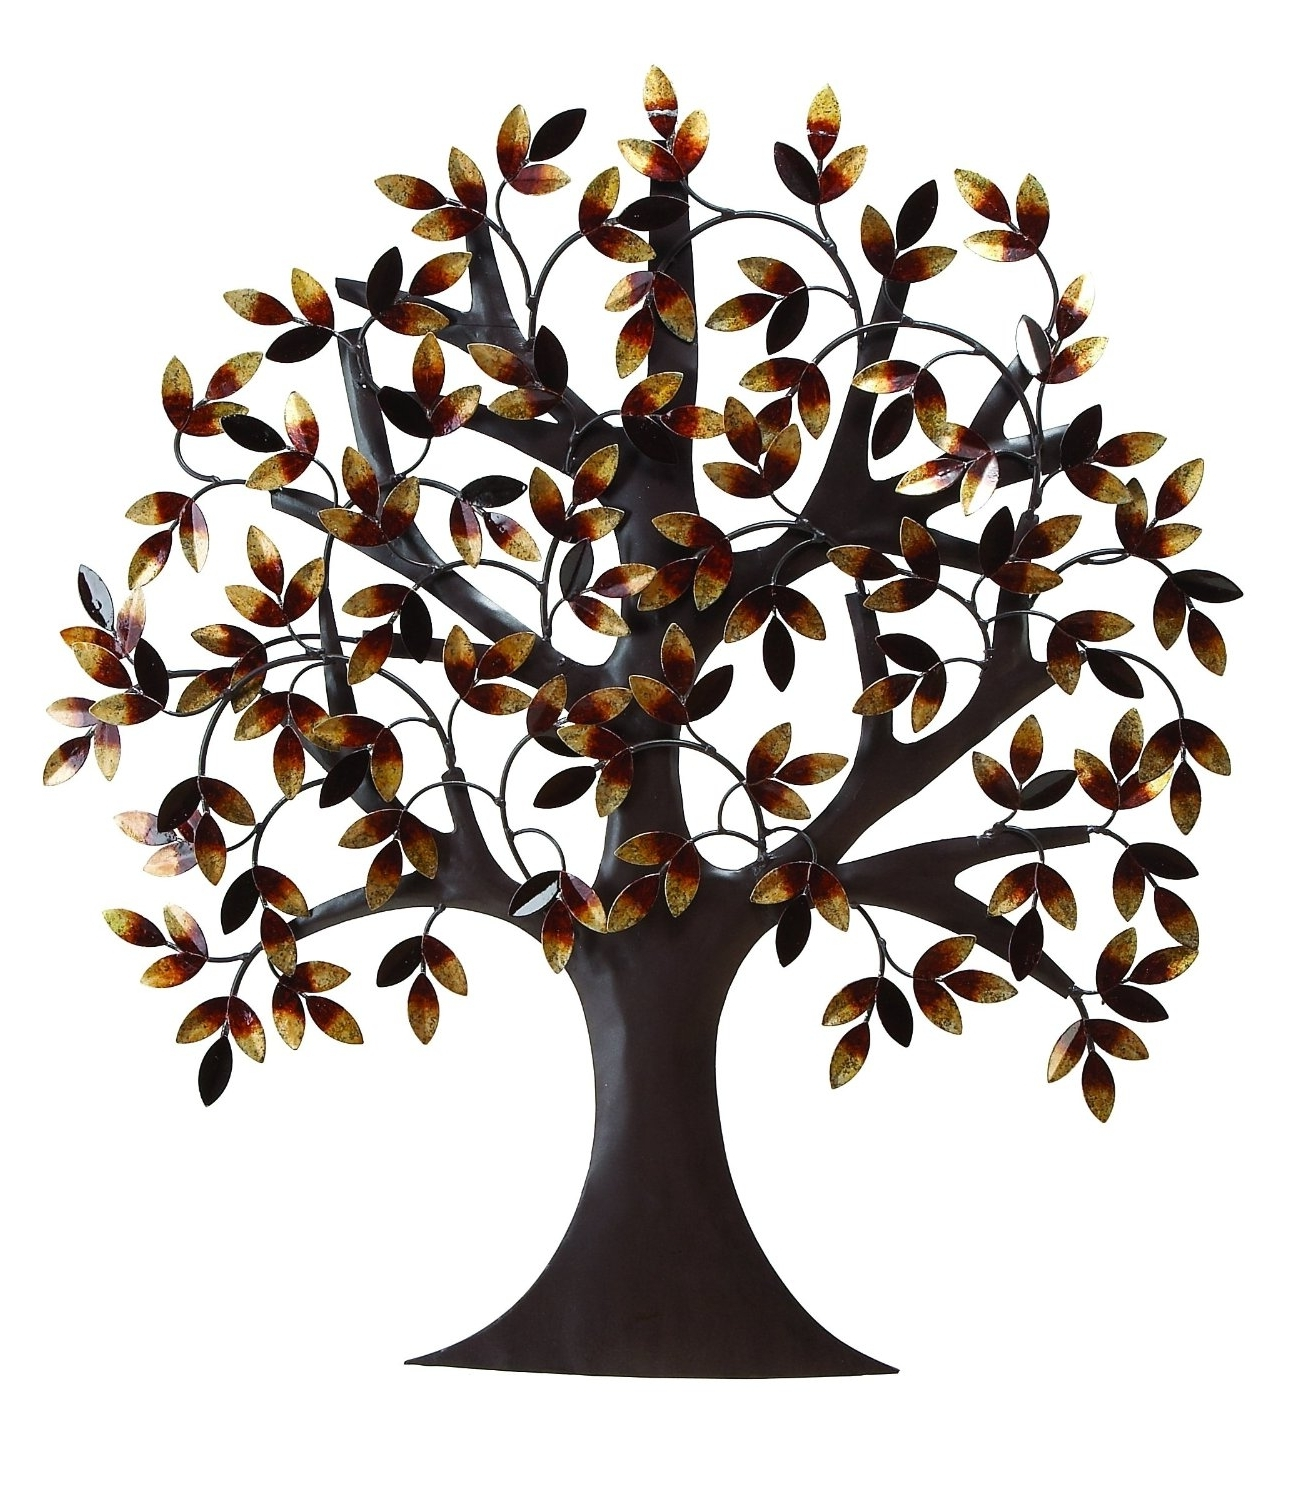 Metal Tree Wall Art Sculpture Pertaining To Popular Amazon – Deco 79 Metal Tree Wall Decor For Elite Class Decor (View 7 of 15)